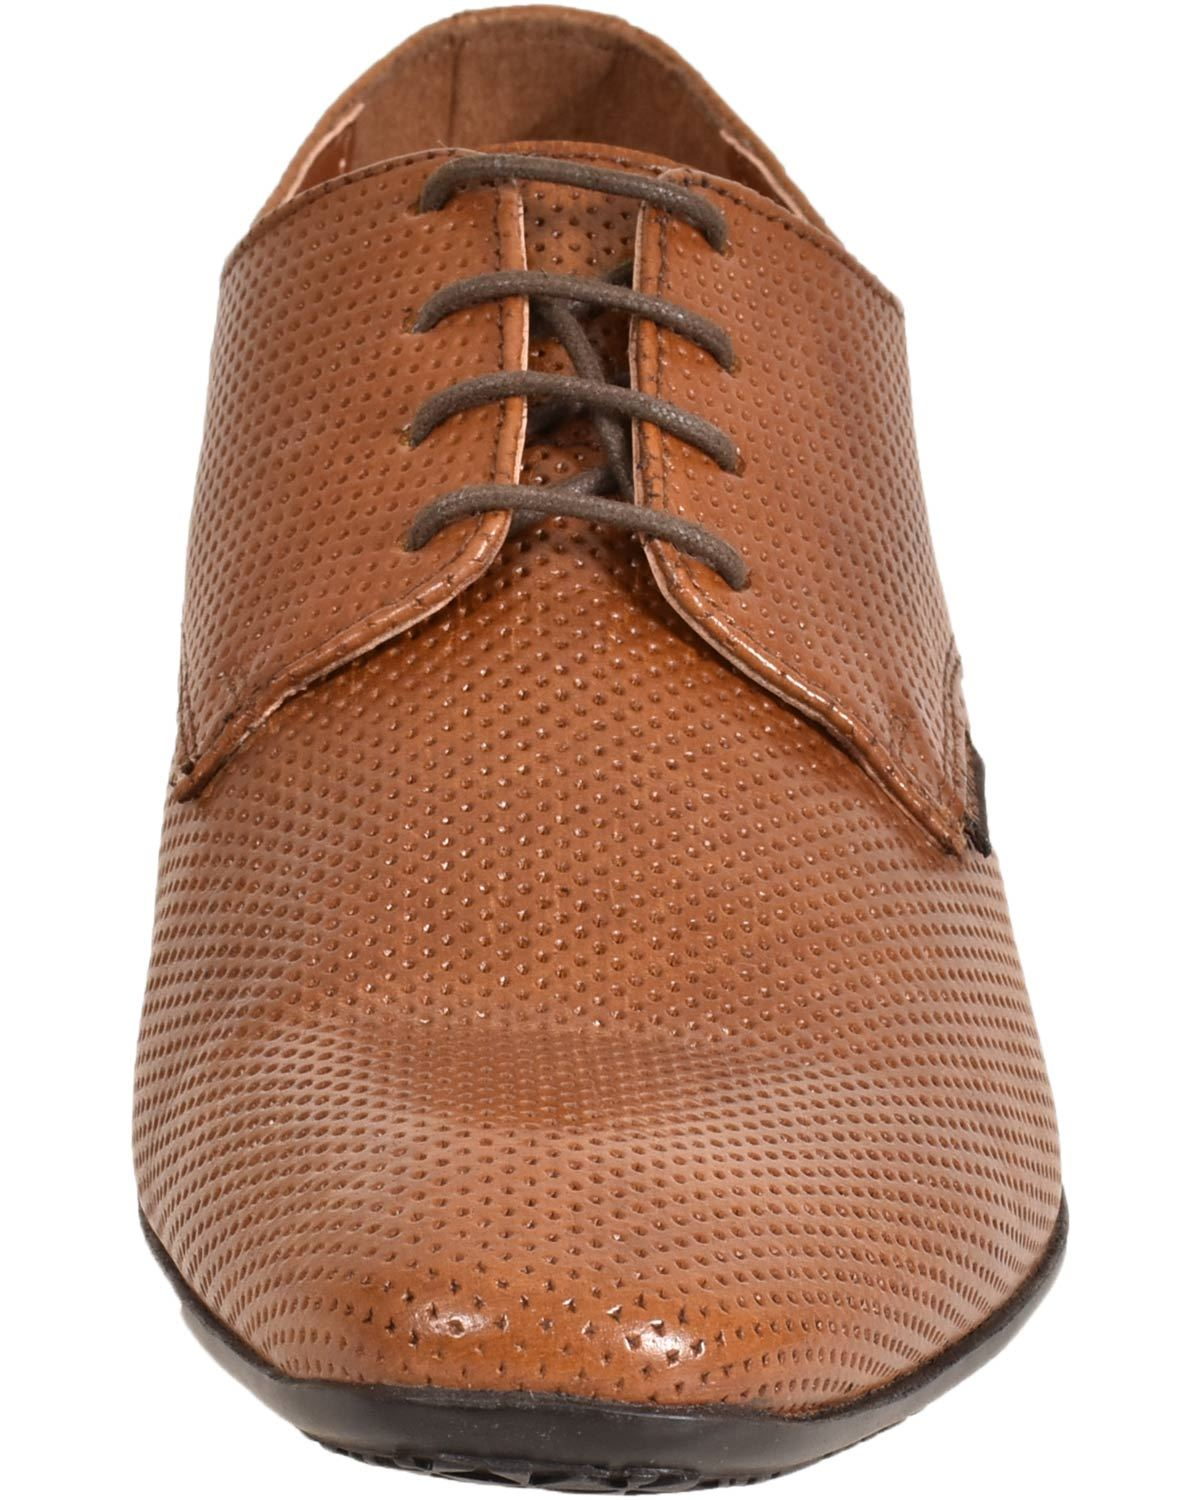 Mens-UK-Style-Leather-Lining-Formal-Office-Wedding-Smart-Work-Brogue-Shoes thumbnail 12